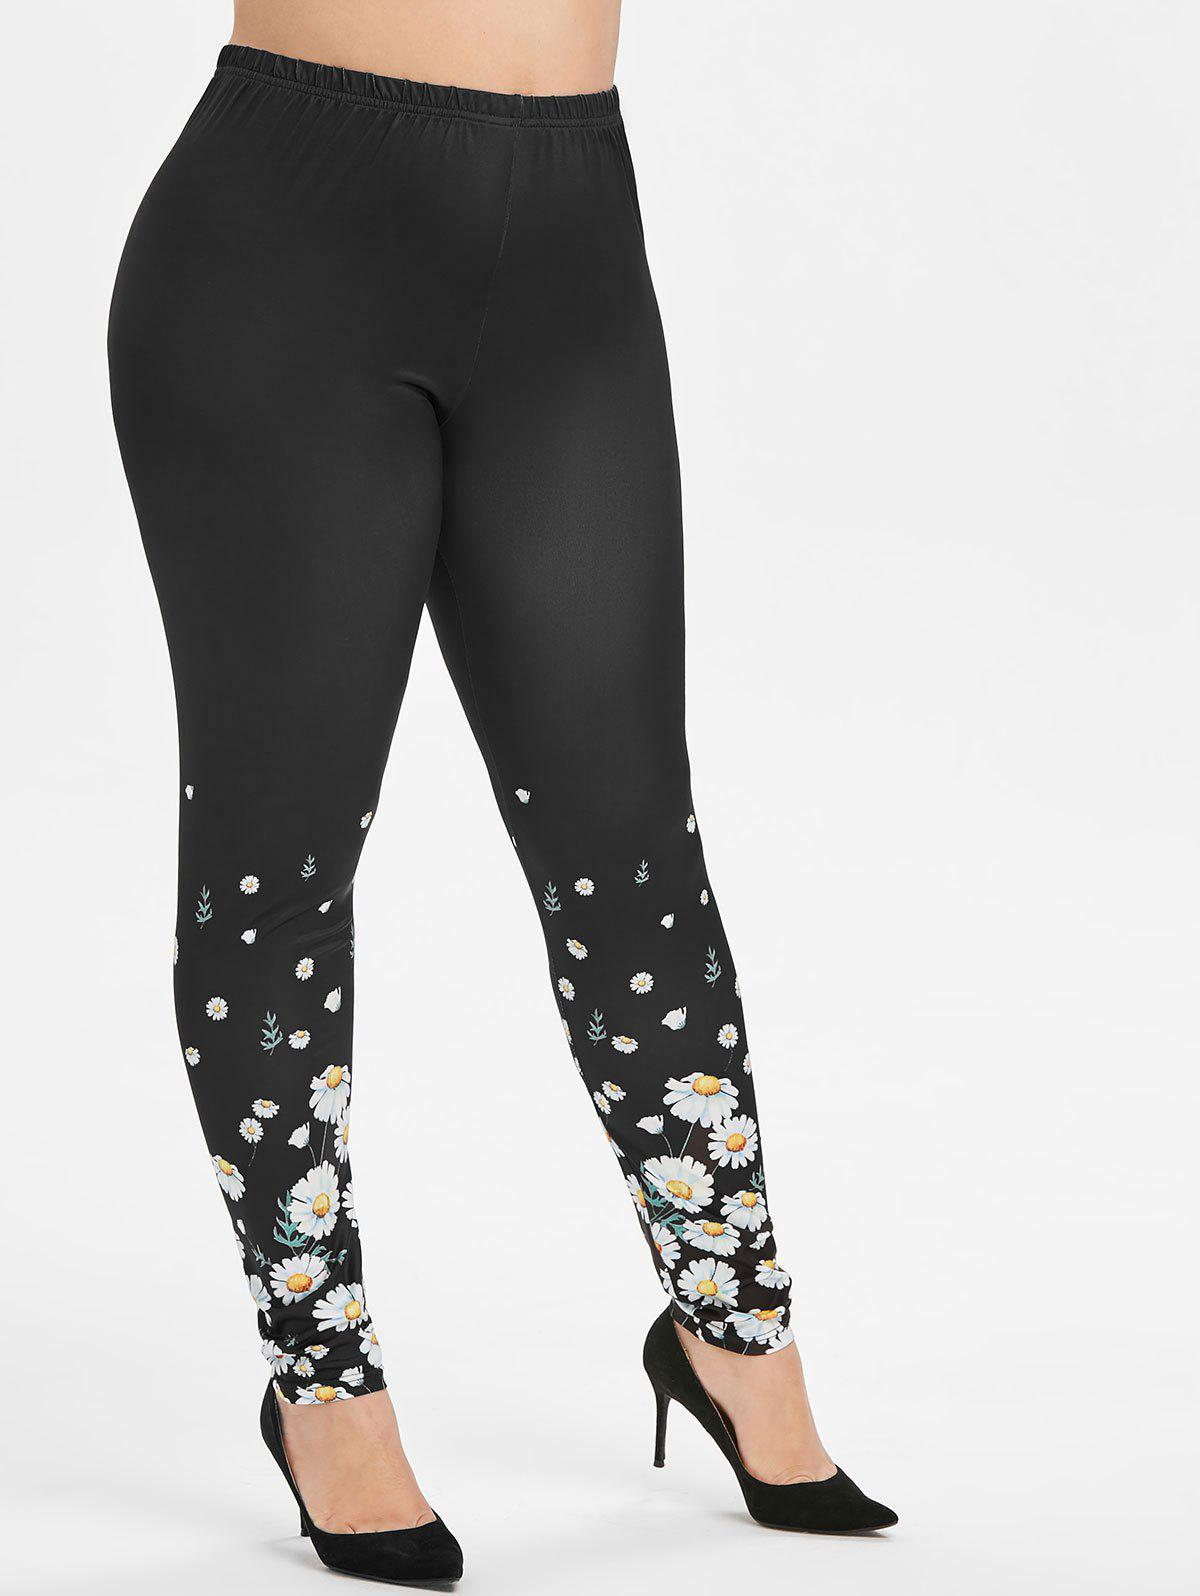 Plus Size Floral Print High Rise Skinny Leggings - BLACK 5X